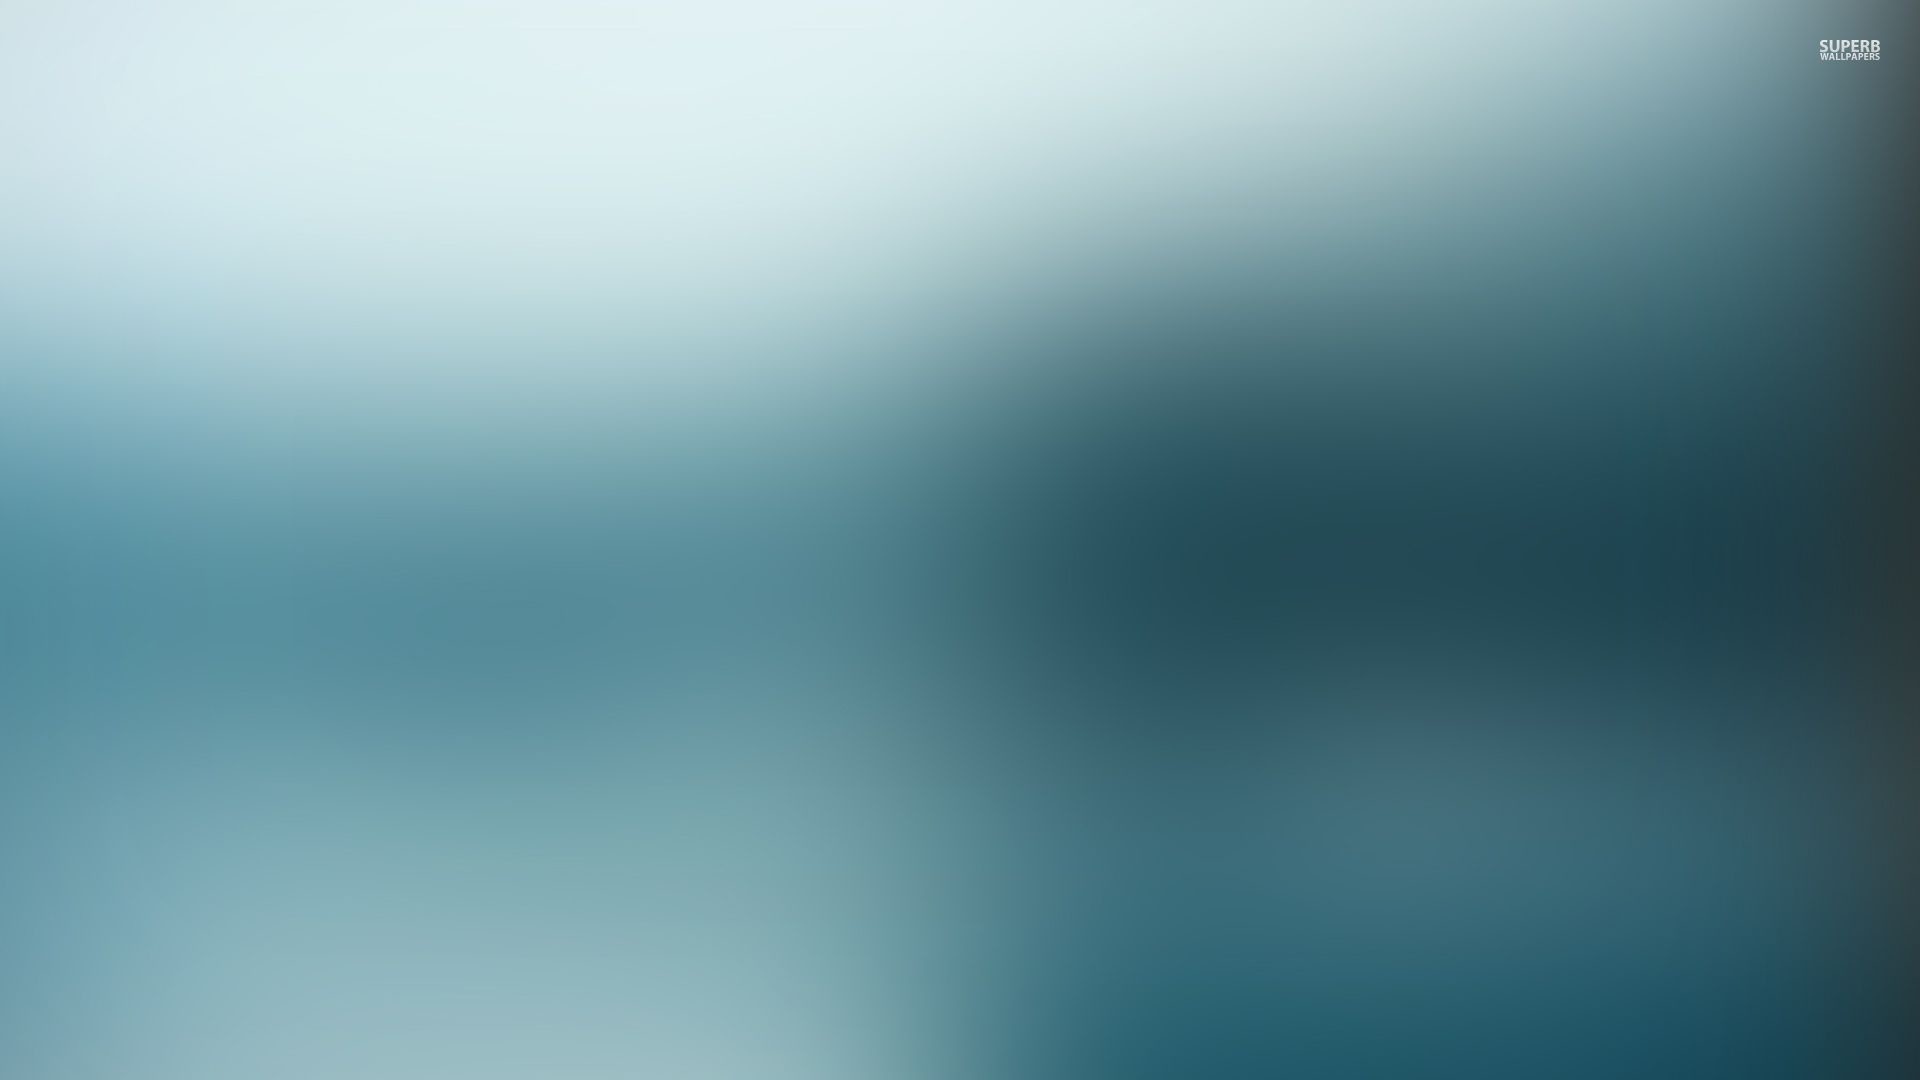 Res: 1920x1080, Turquoise Blur Wallpapers 13 - 1920 X 1080